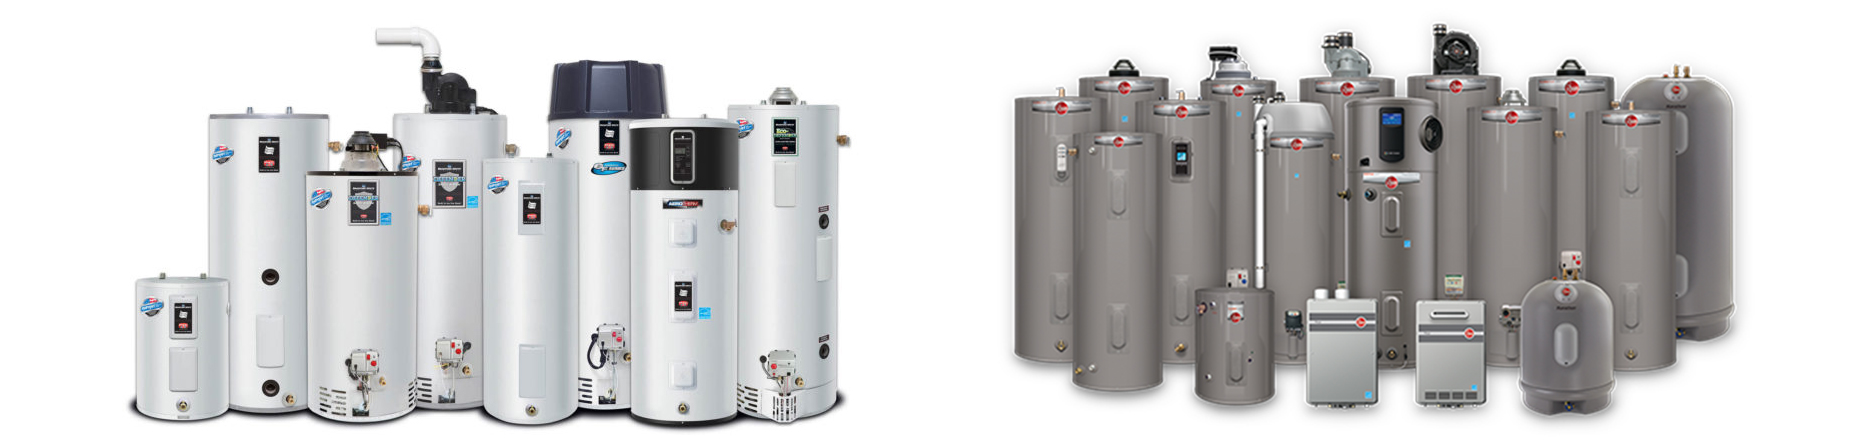 Ormond Beach Water Heater Sales And Installation By Total